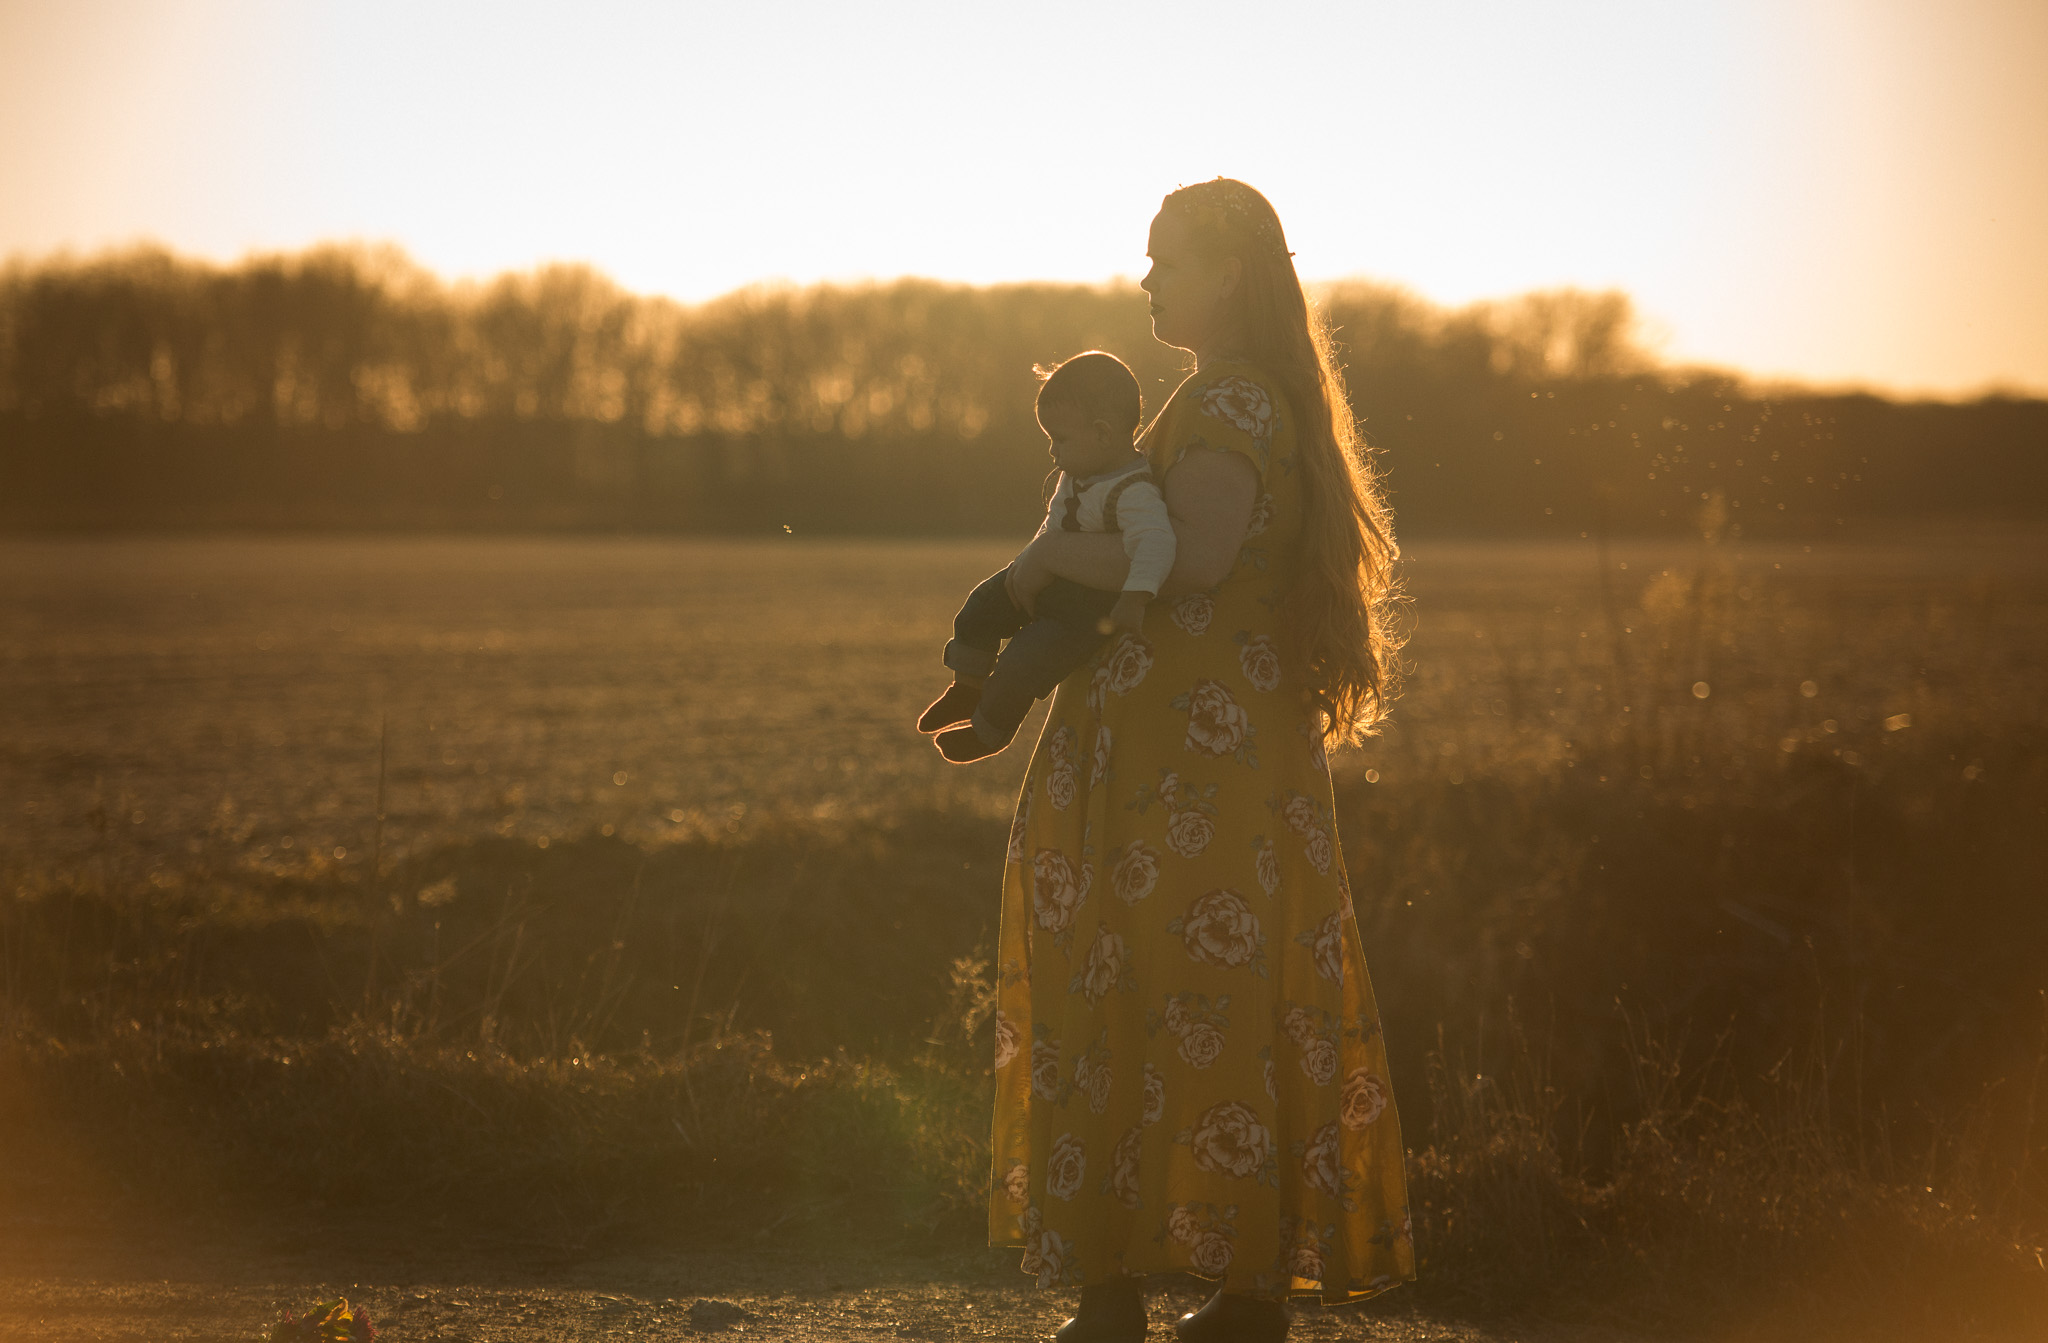 Mother walking in the field carrying her son in the golden sunset